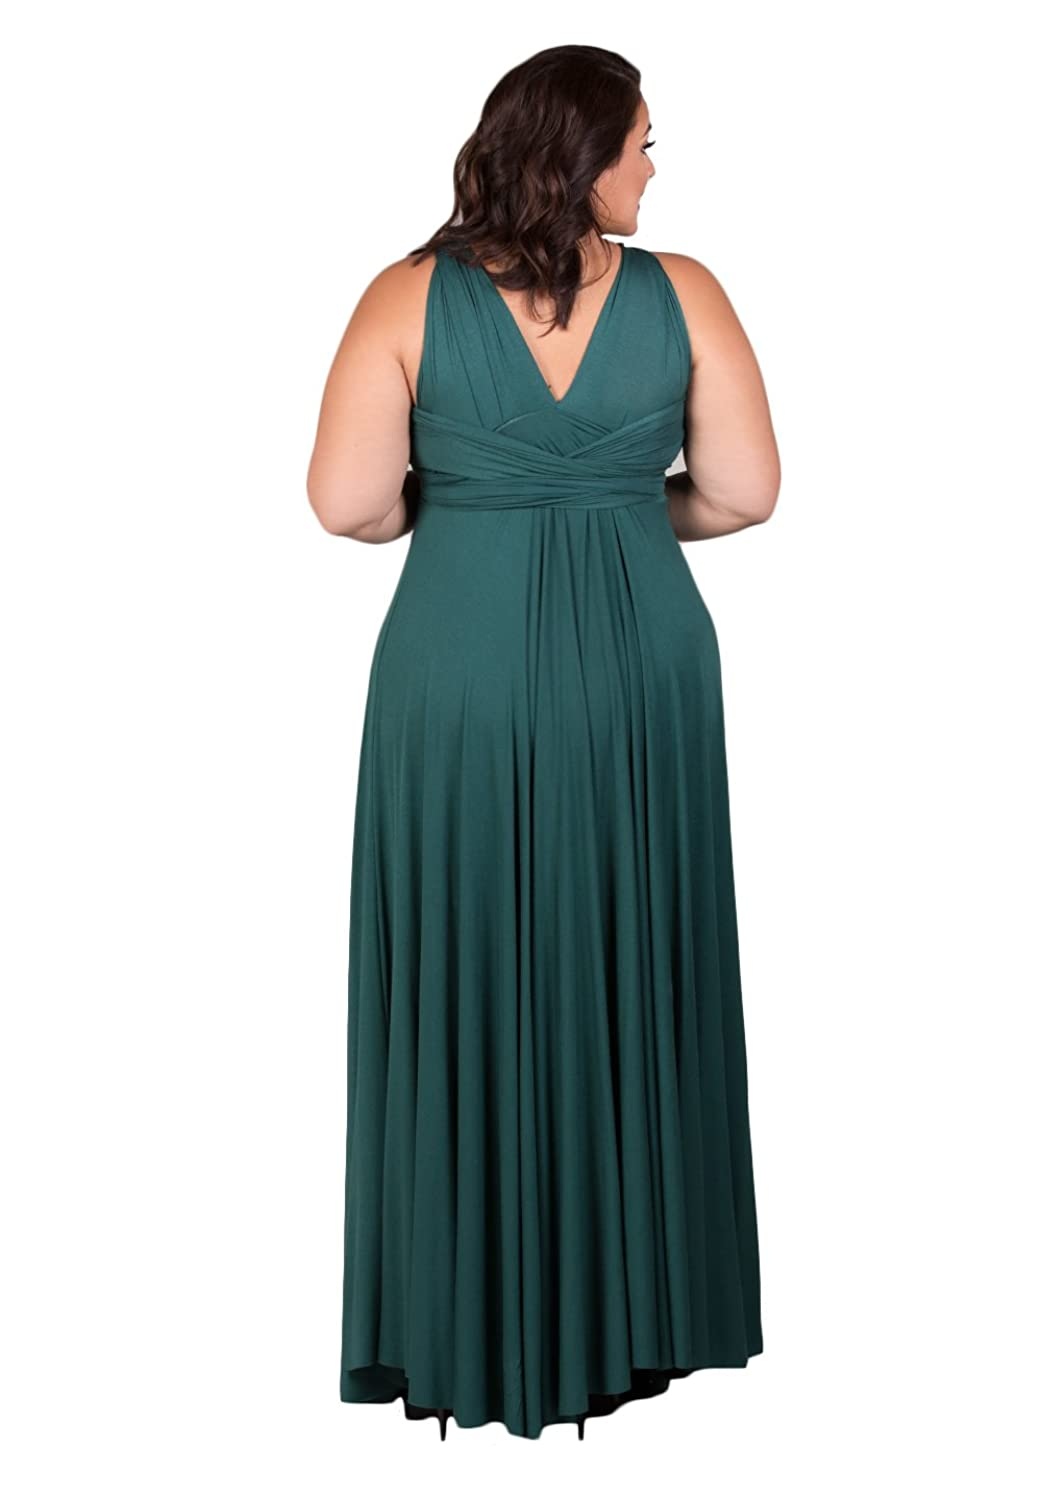 Amazon.com: SWAK Womens Plus Size Eternity Maxi Convertible Dress: Clothing